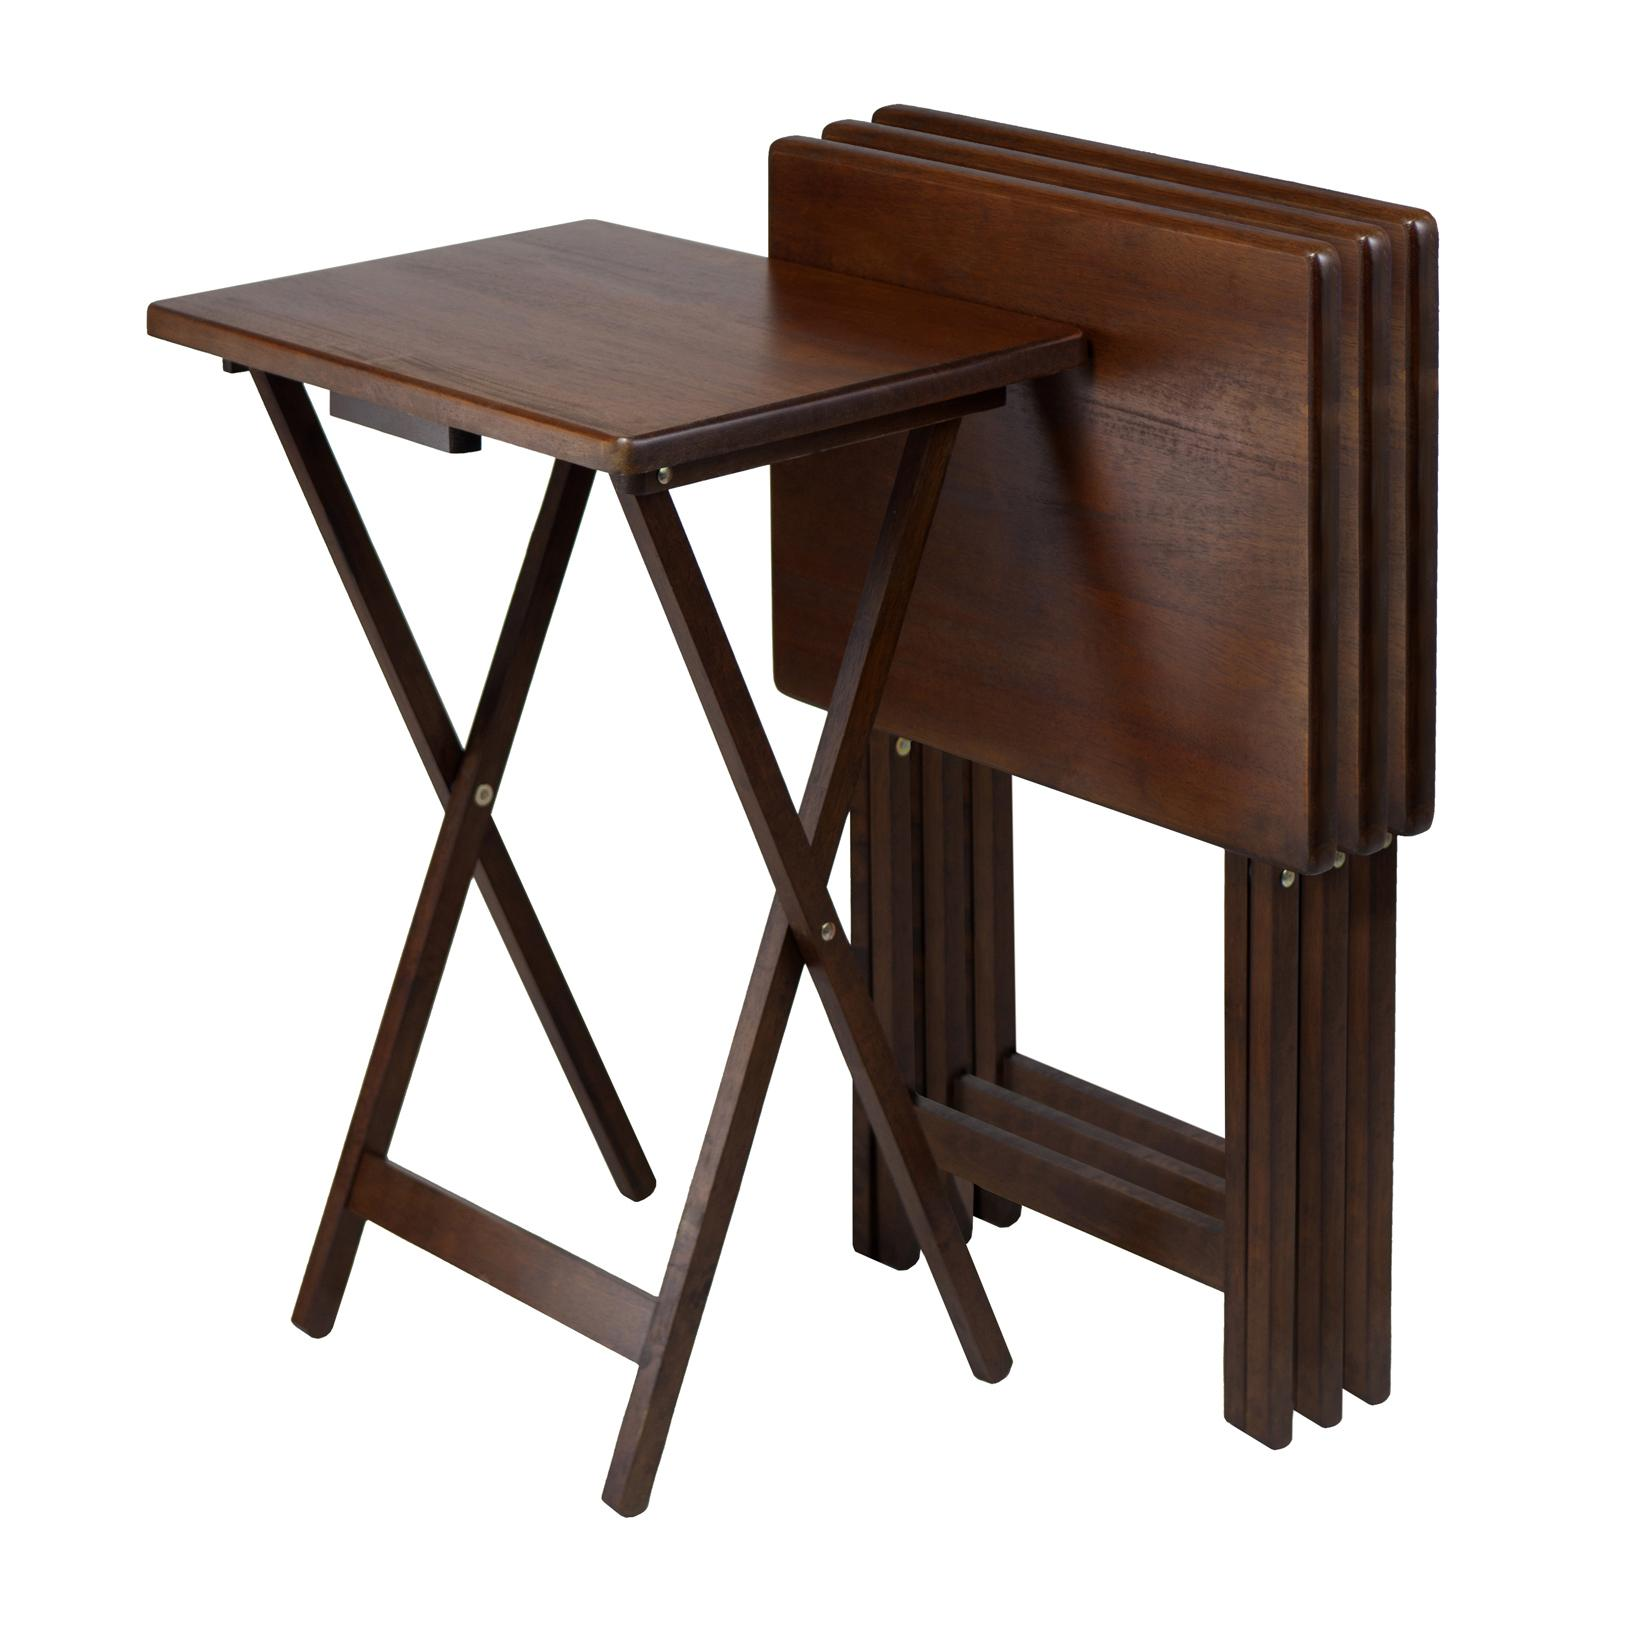 Winsome wood tv table antique walnut finish for Table 19 review